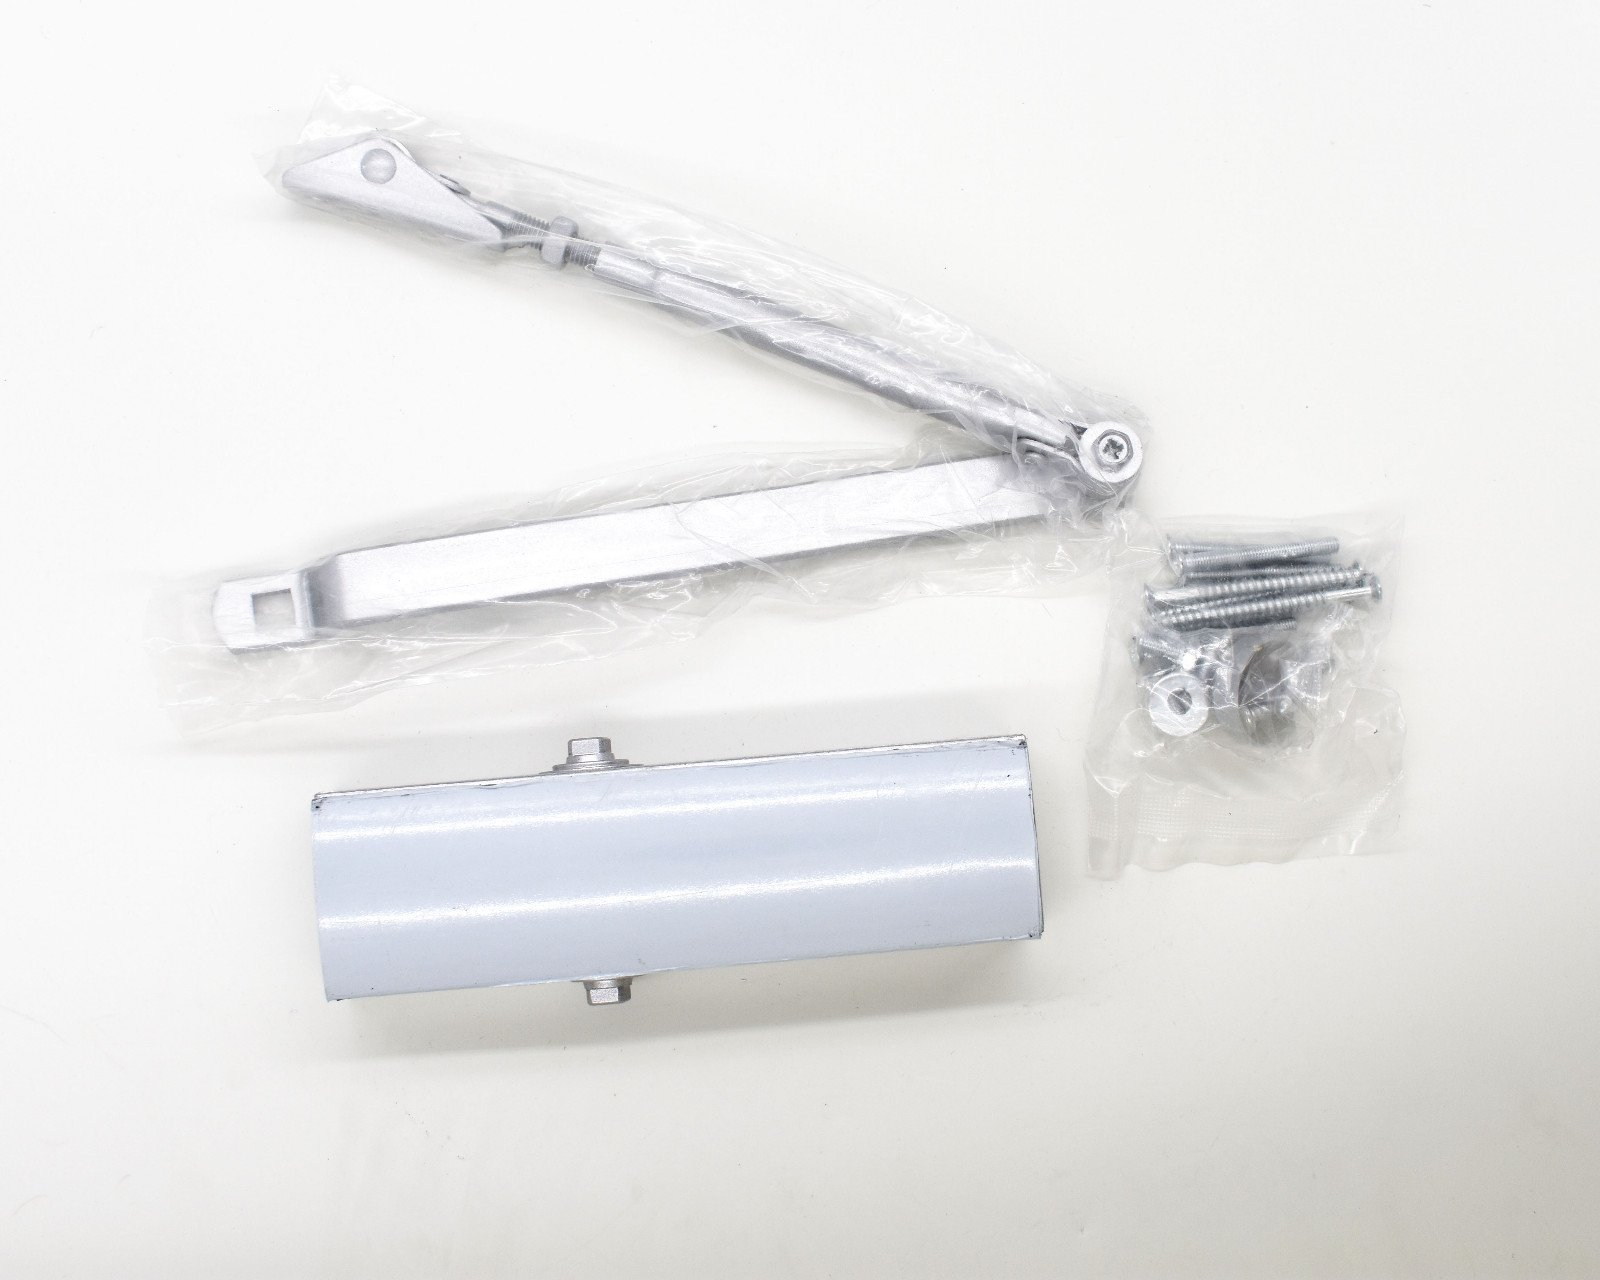 Hot automatic door closer price hexagonal automatic door closer hidden Kerui Furniture Hardware